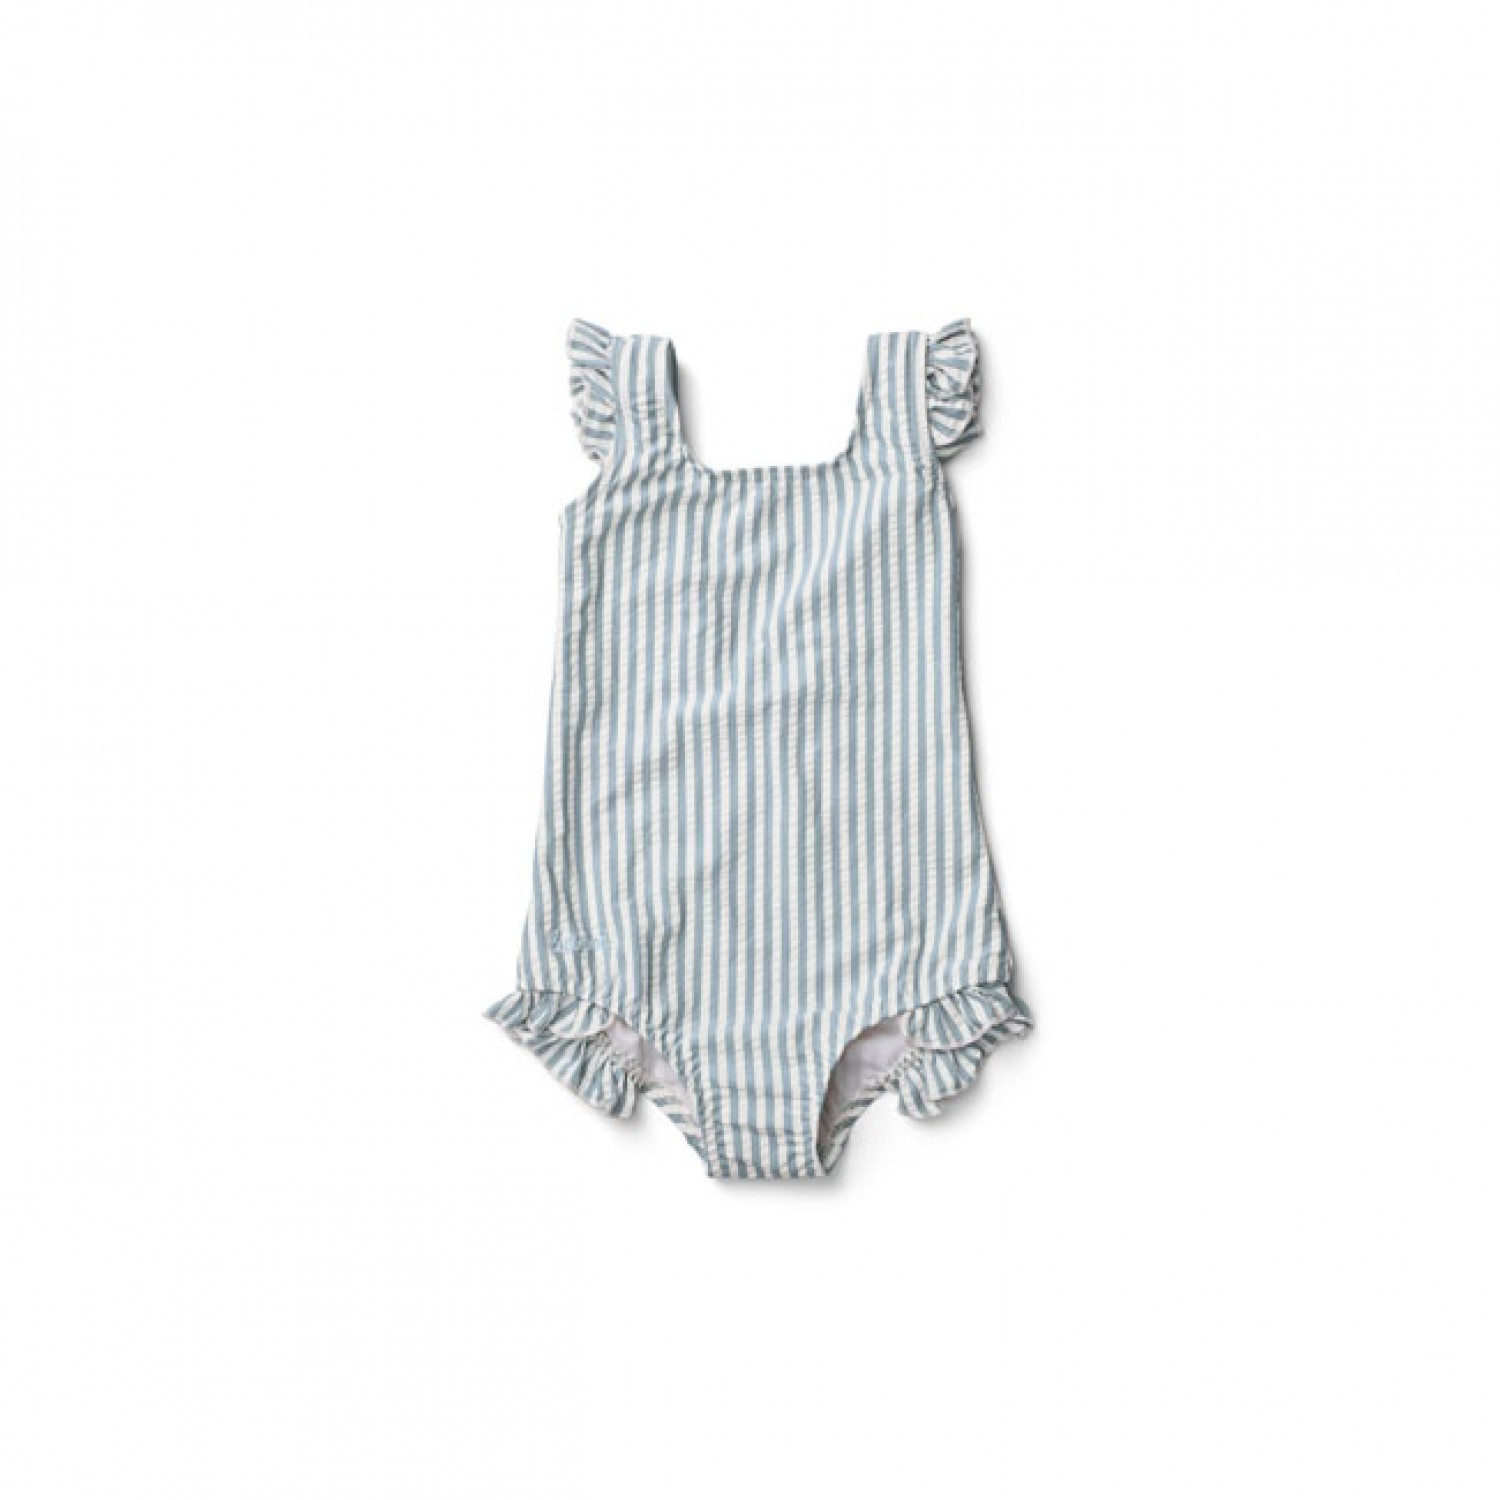 Tanna Swimsuit - Y/D stripe: Sea blue/white